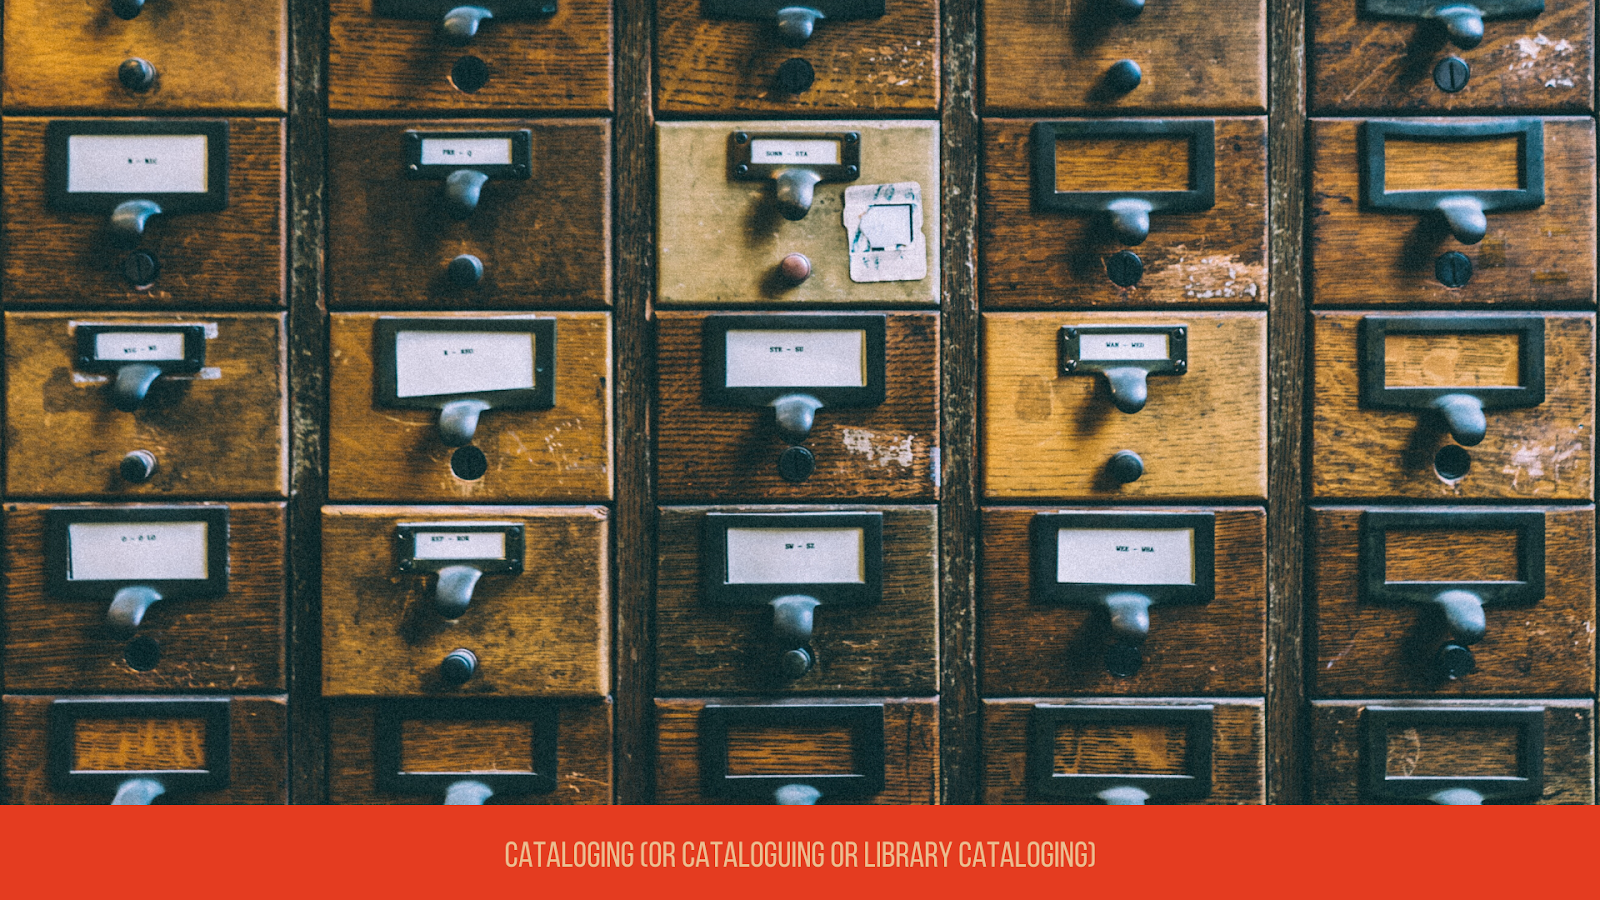 Cataloging or Cataloguing or Library Cataloging